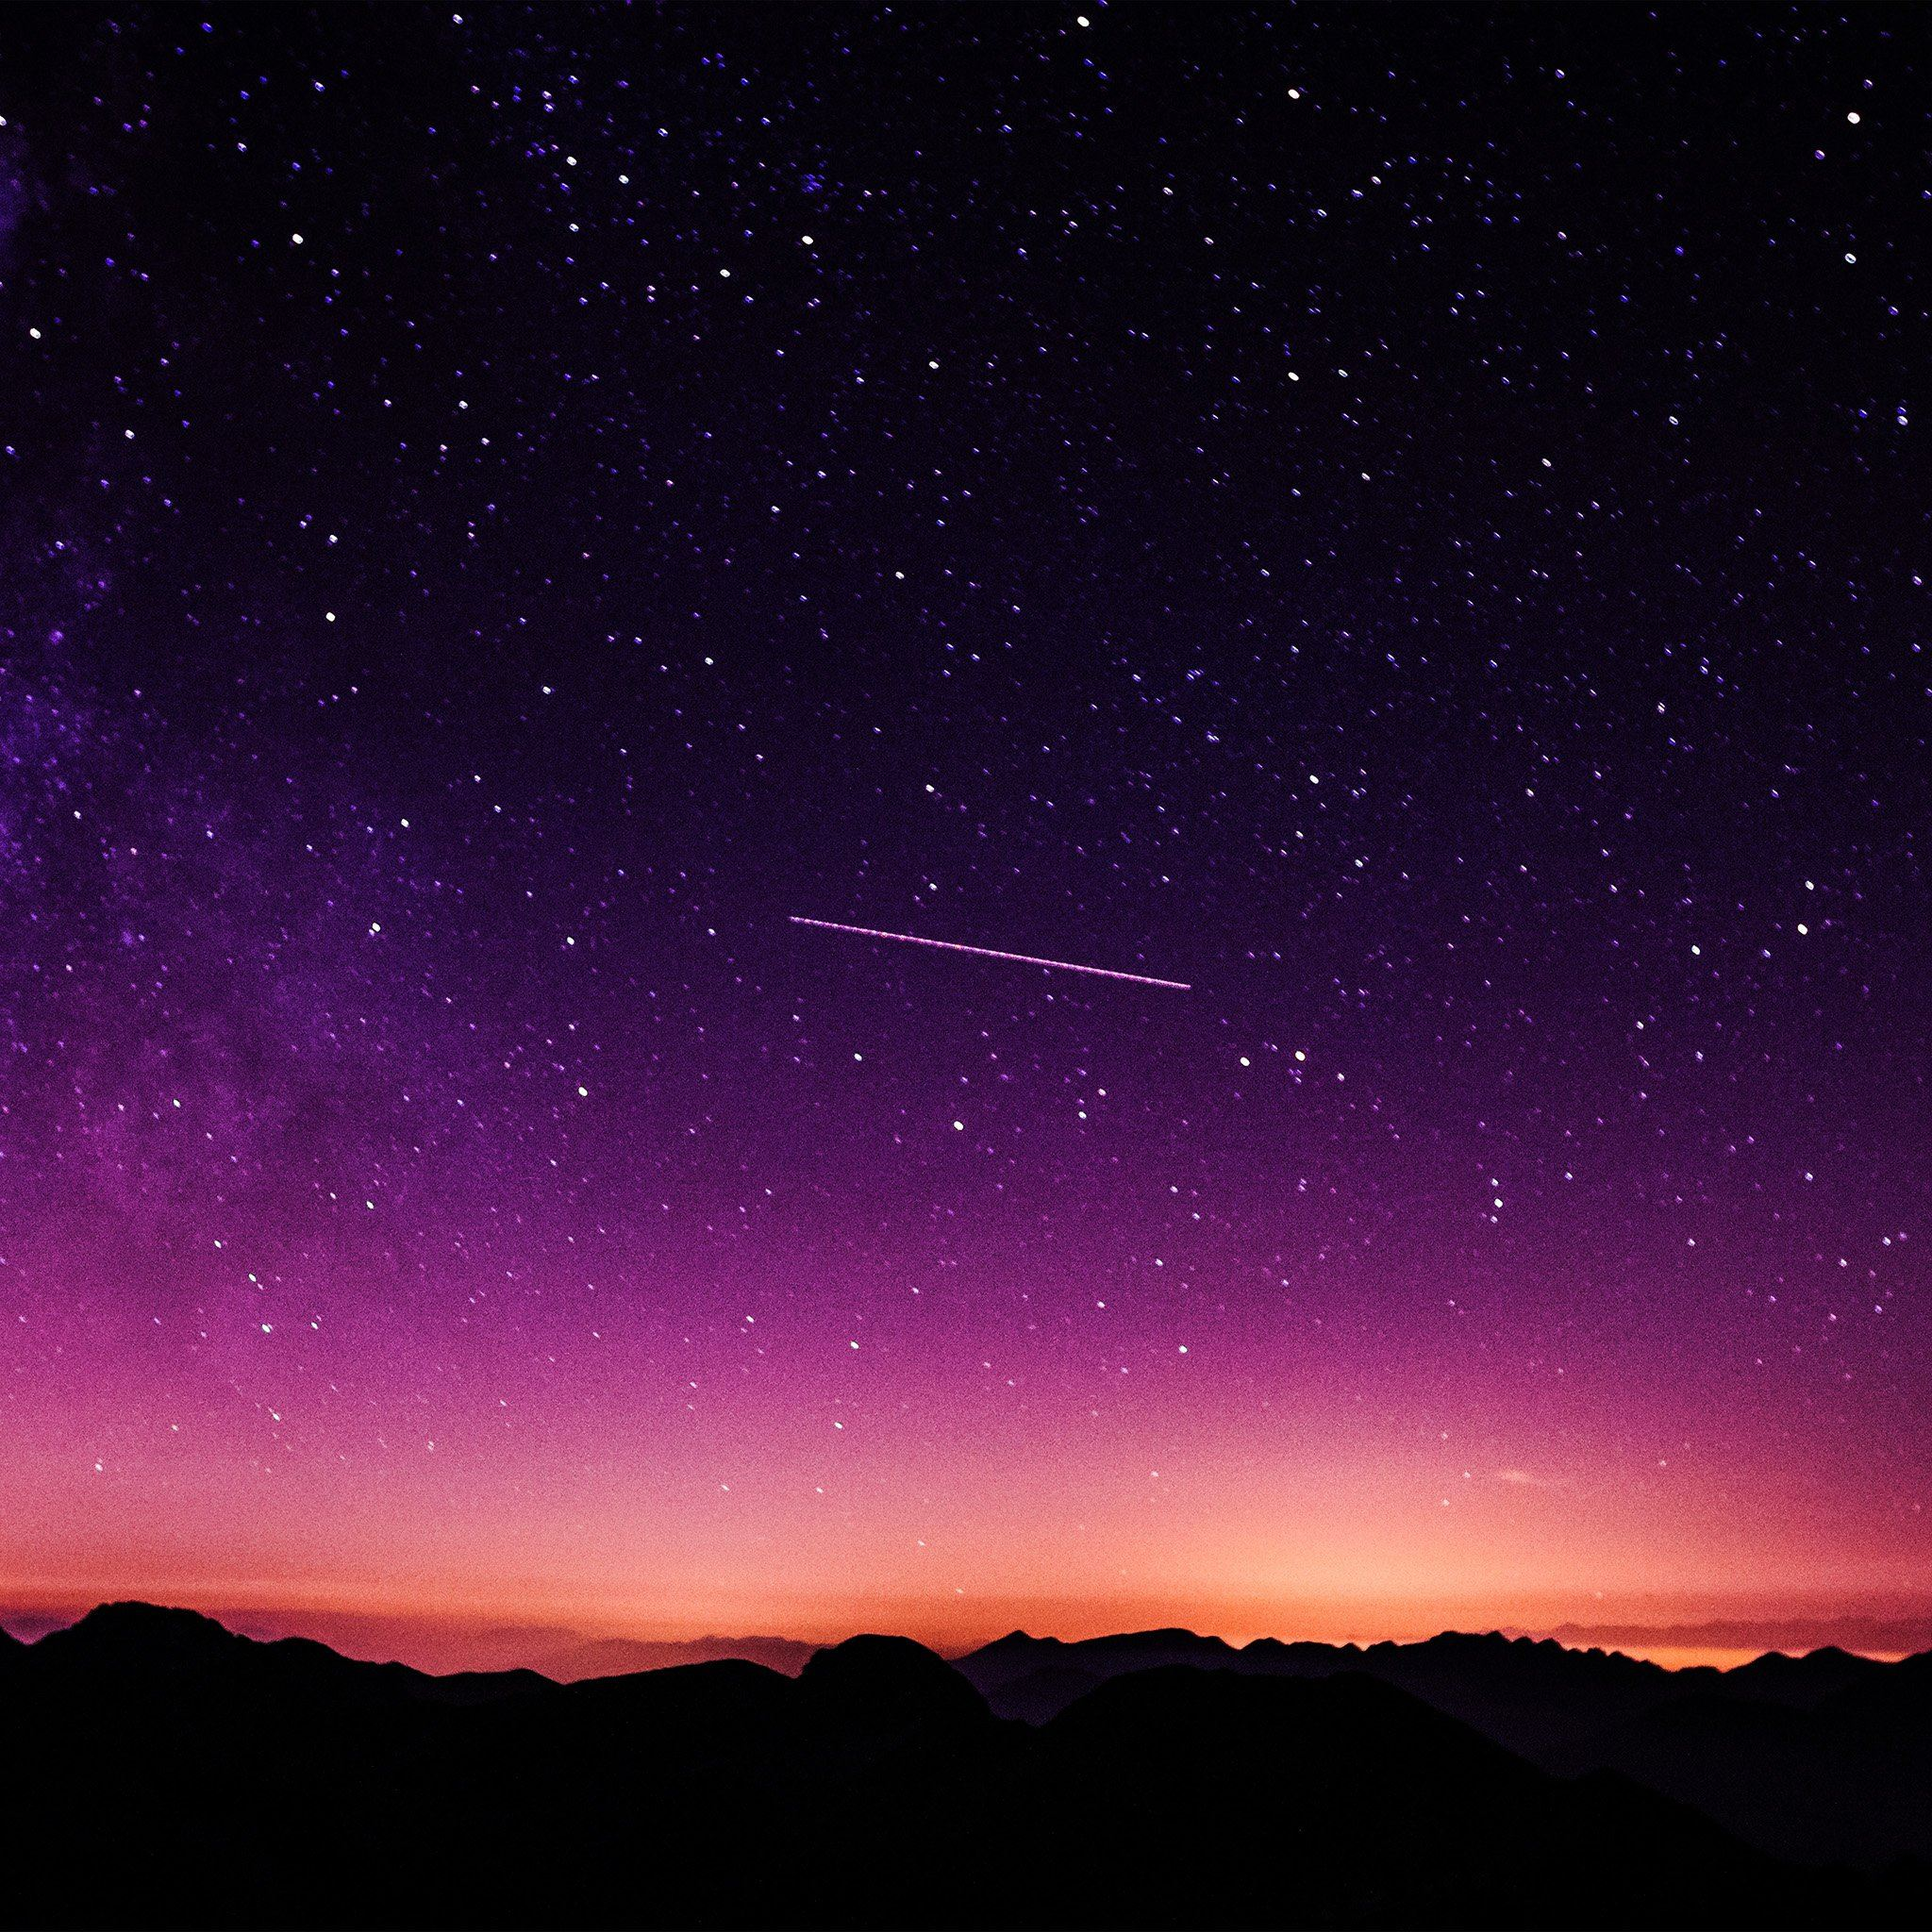 Star Galaxy Night Sky Mountain Purple Red Nature Space iPad Air wallpaper